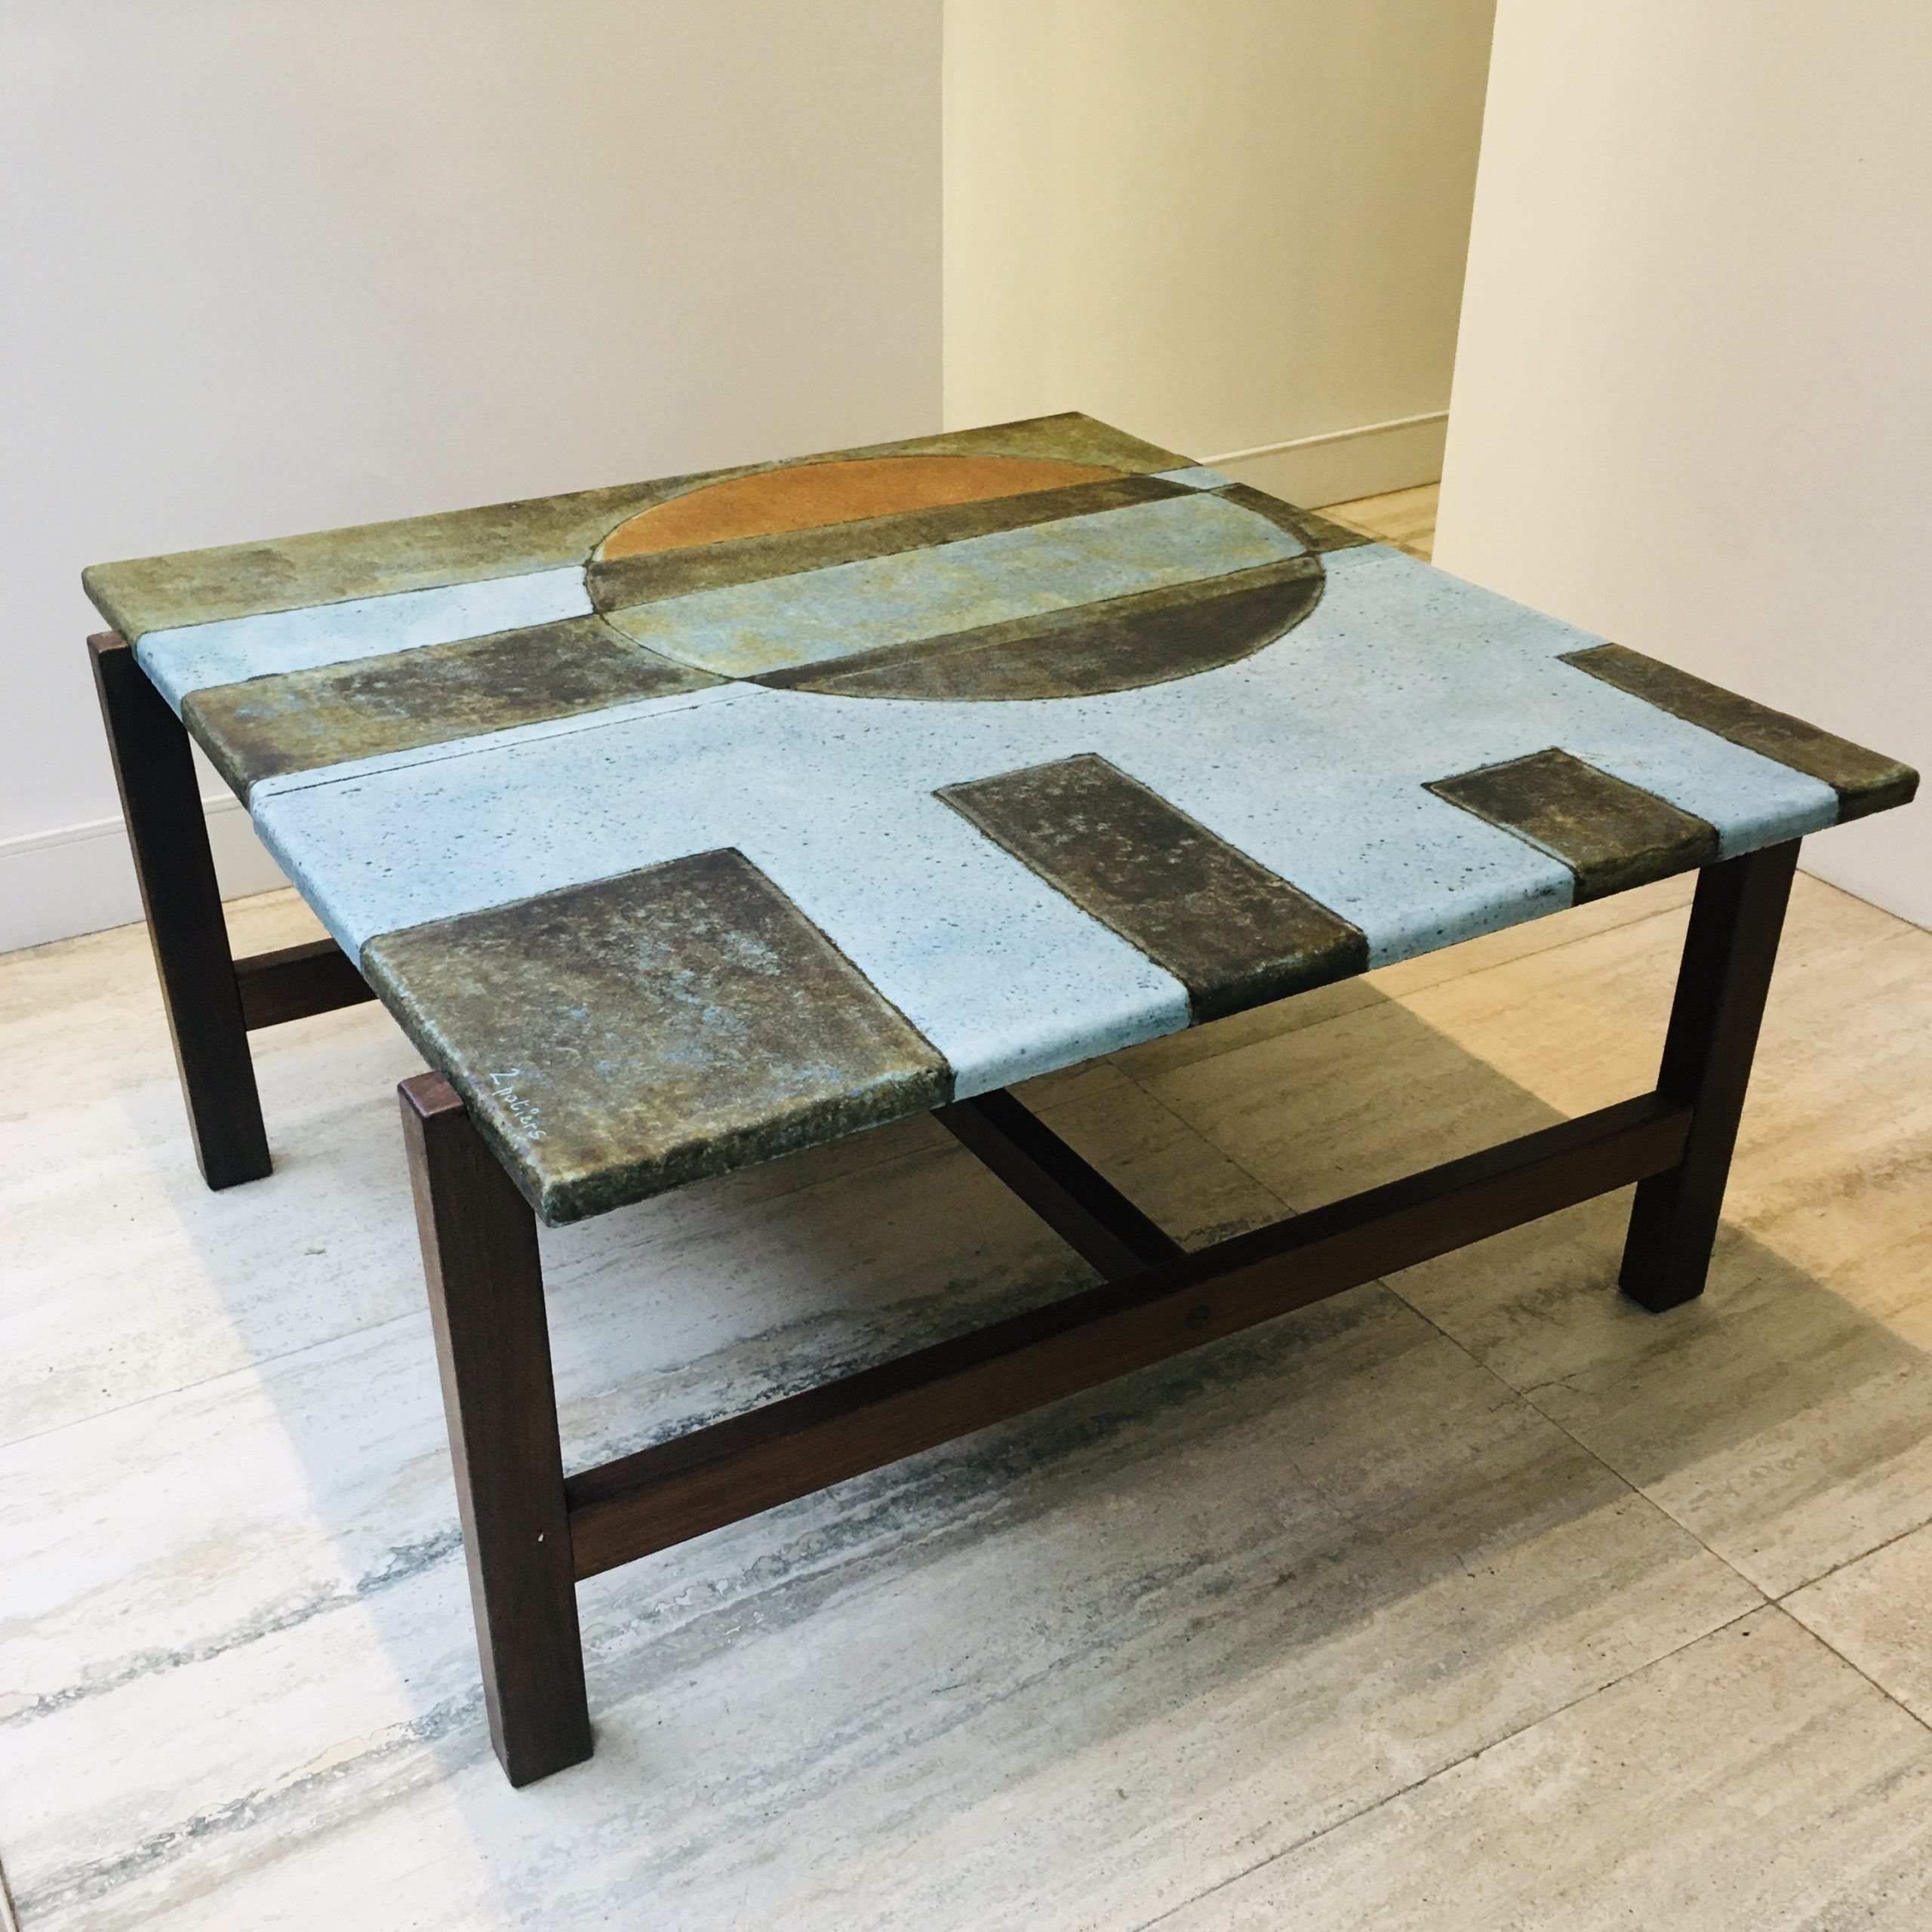 2-POTIERS-table-2